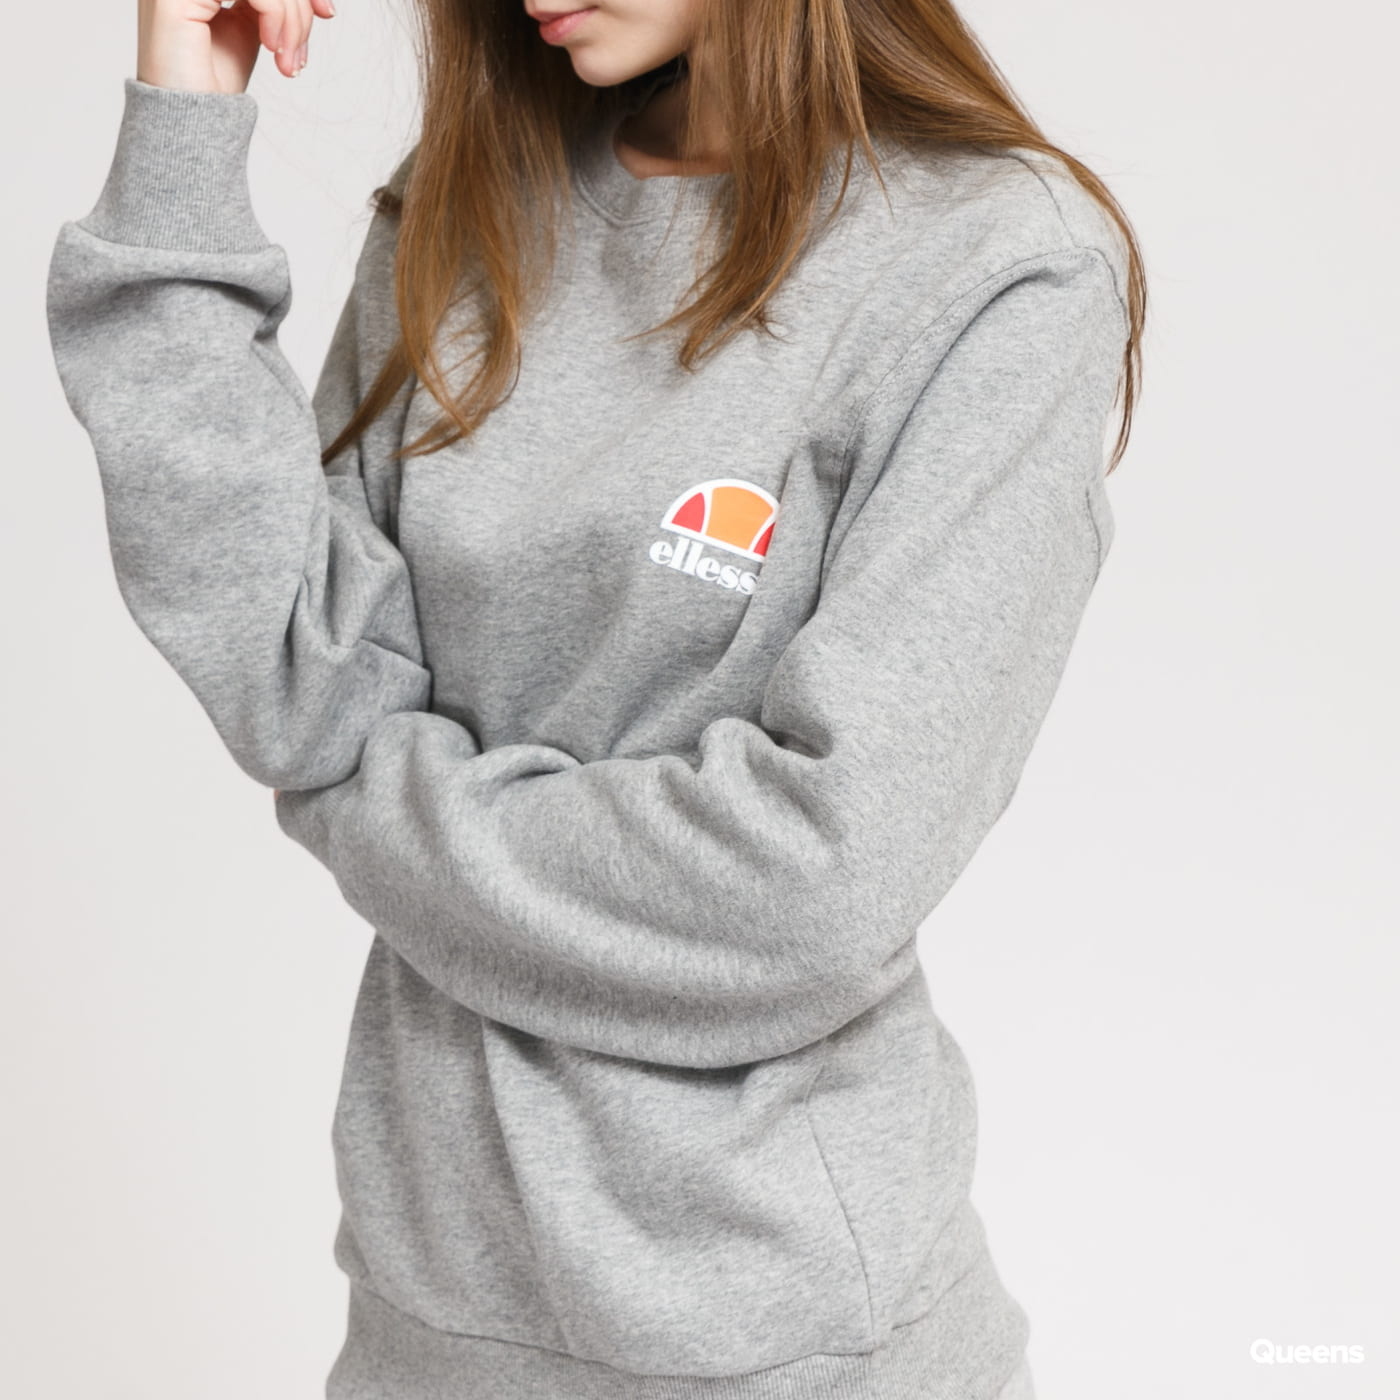 ellesse Haverford Sweathirt melange gray